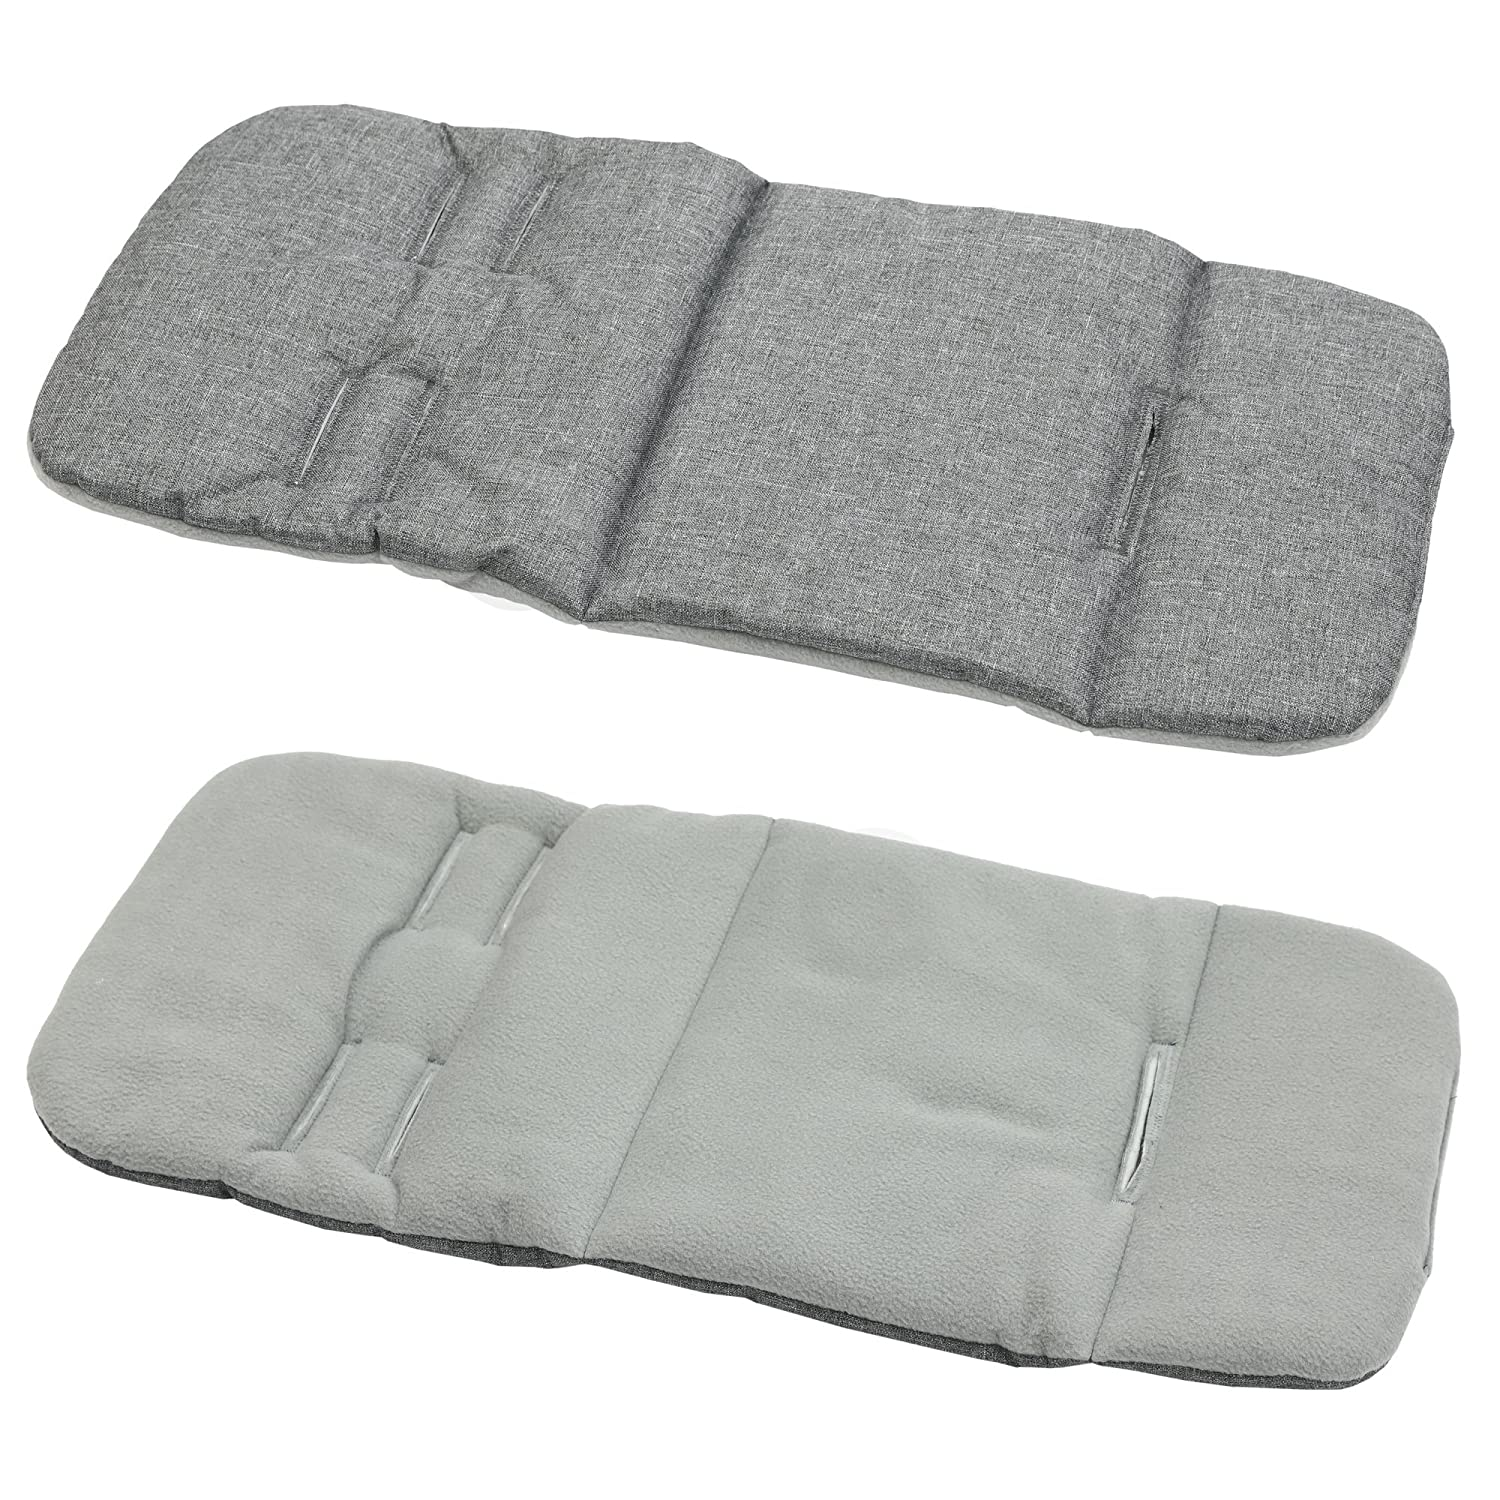 Reversible Pram Insert Liner Covers 5pt Universal (Grey Melange/red Fleece)